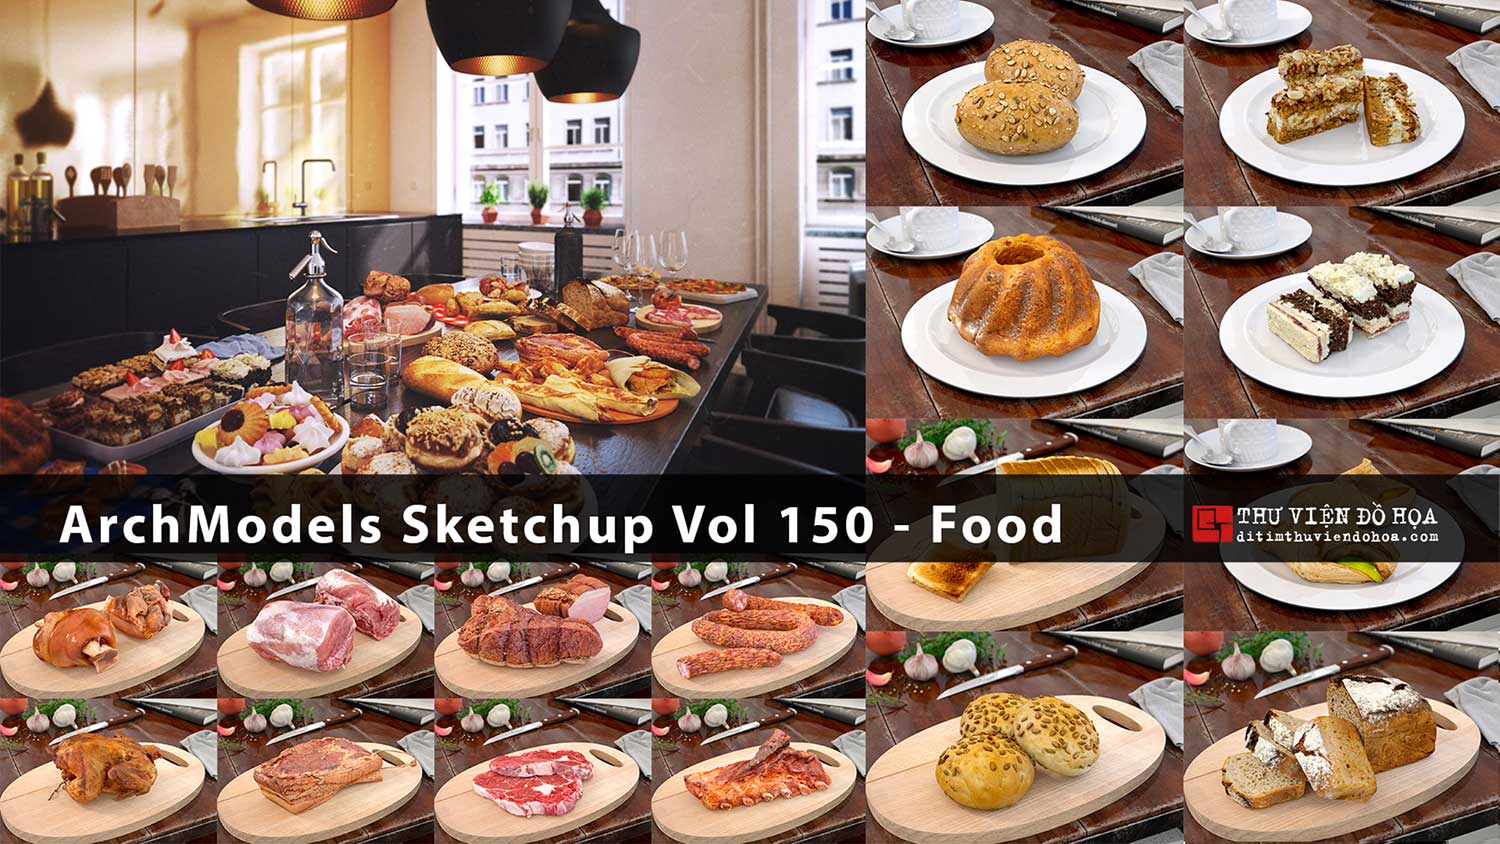 [ SketchUp Library ] Evermotion ArchModels Sketchup Vol 150 - Food